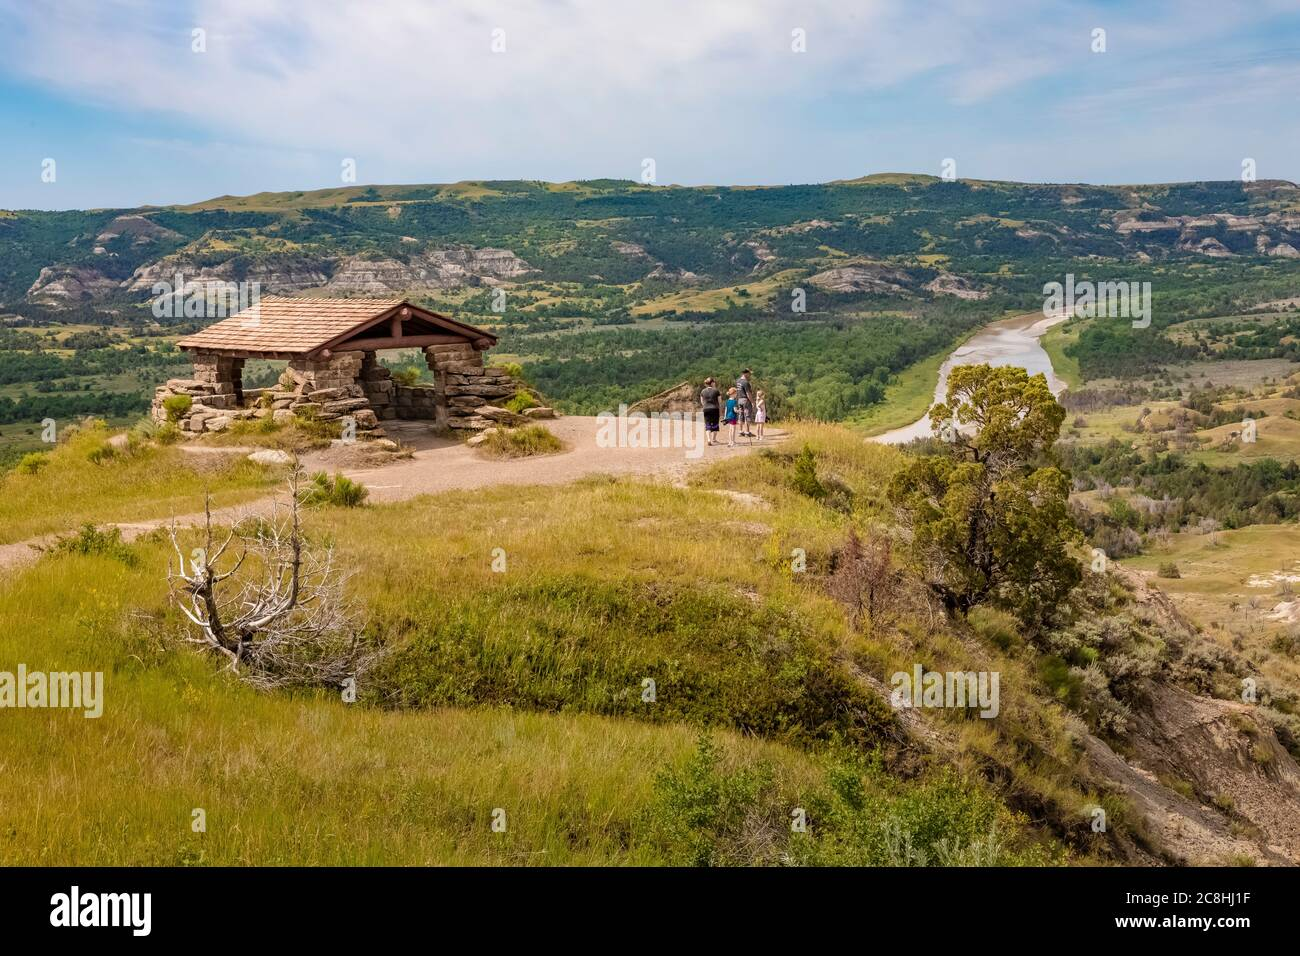 River Bend Overlook, built by the CCC in the 1930s, in Theodore Roosevelt National Park, North Unit, in North Dakota, USA [No model releases; availabl Stock Photo